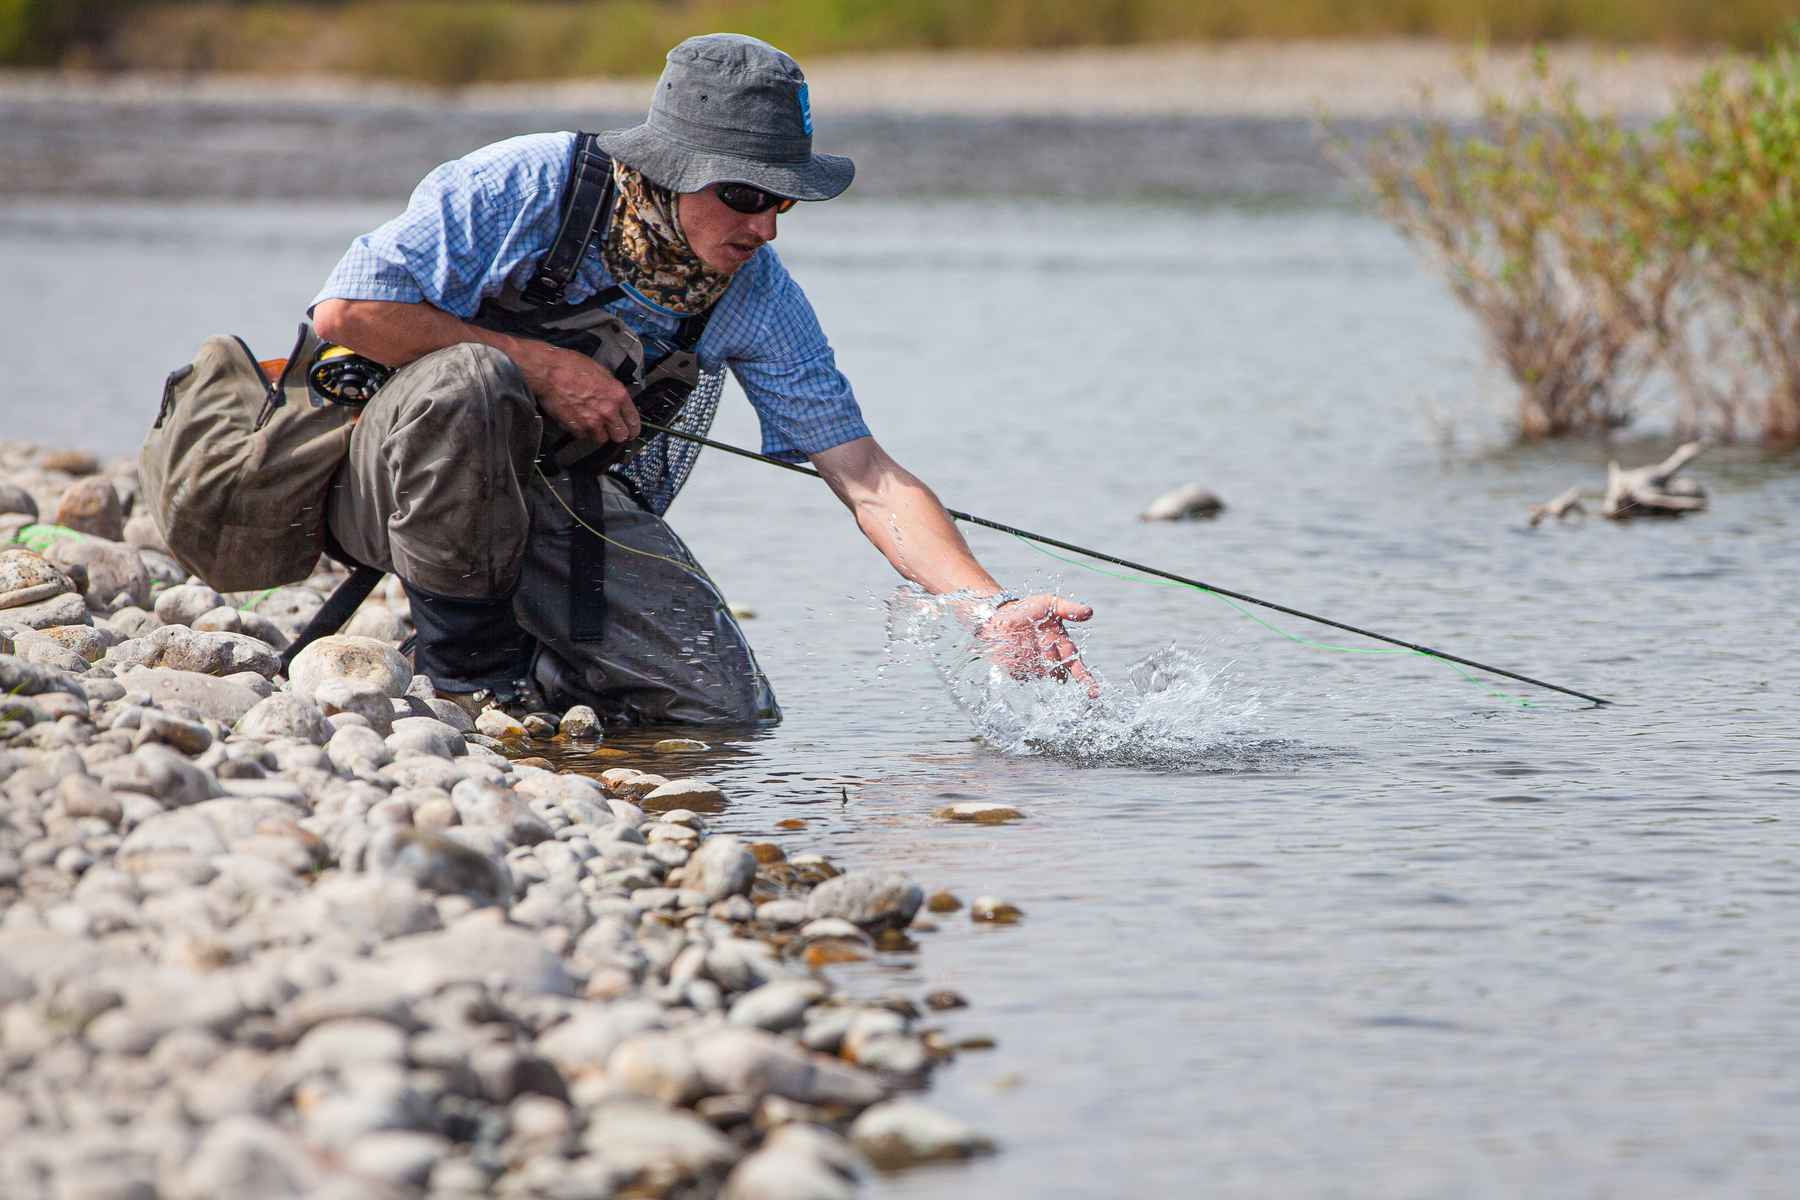 5 dry flies for catching backcountry trout